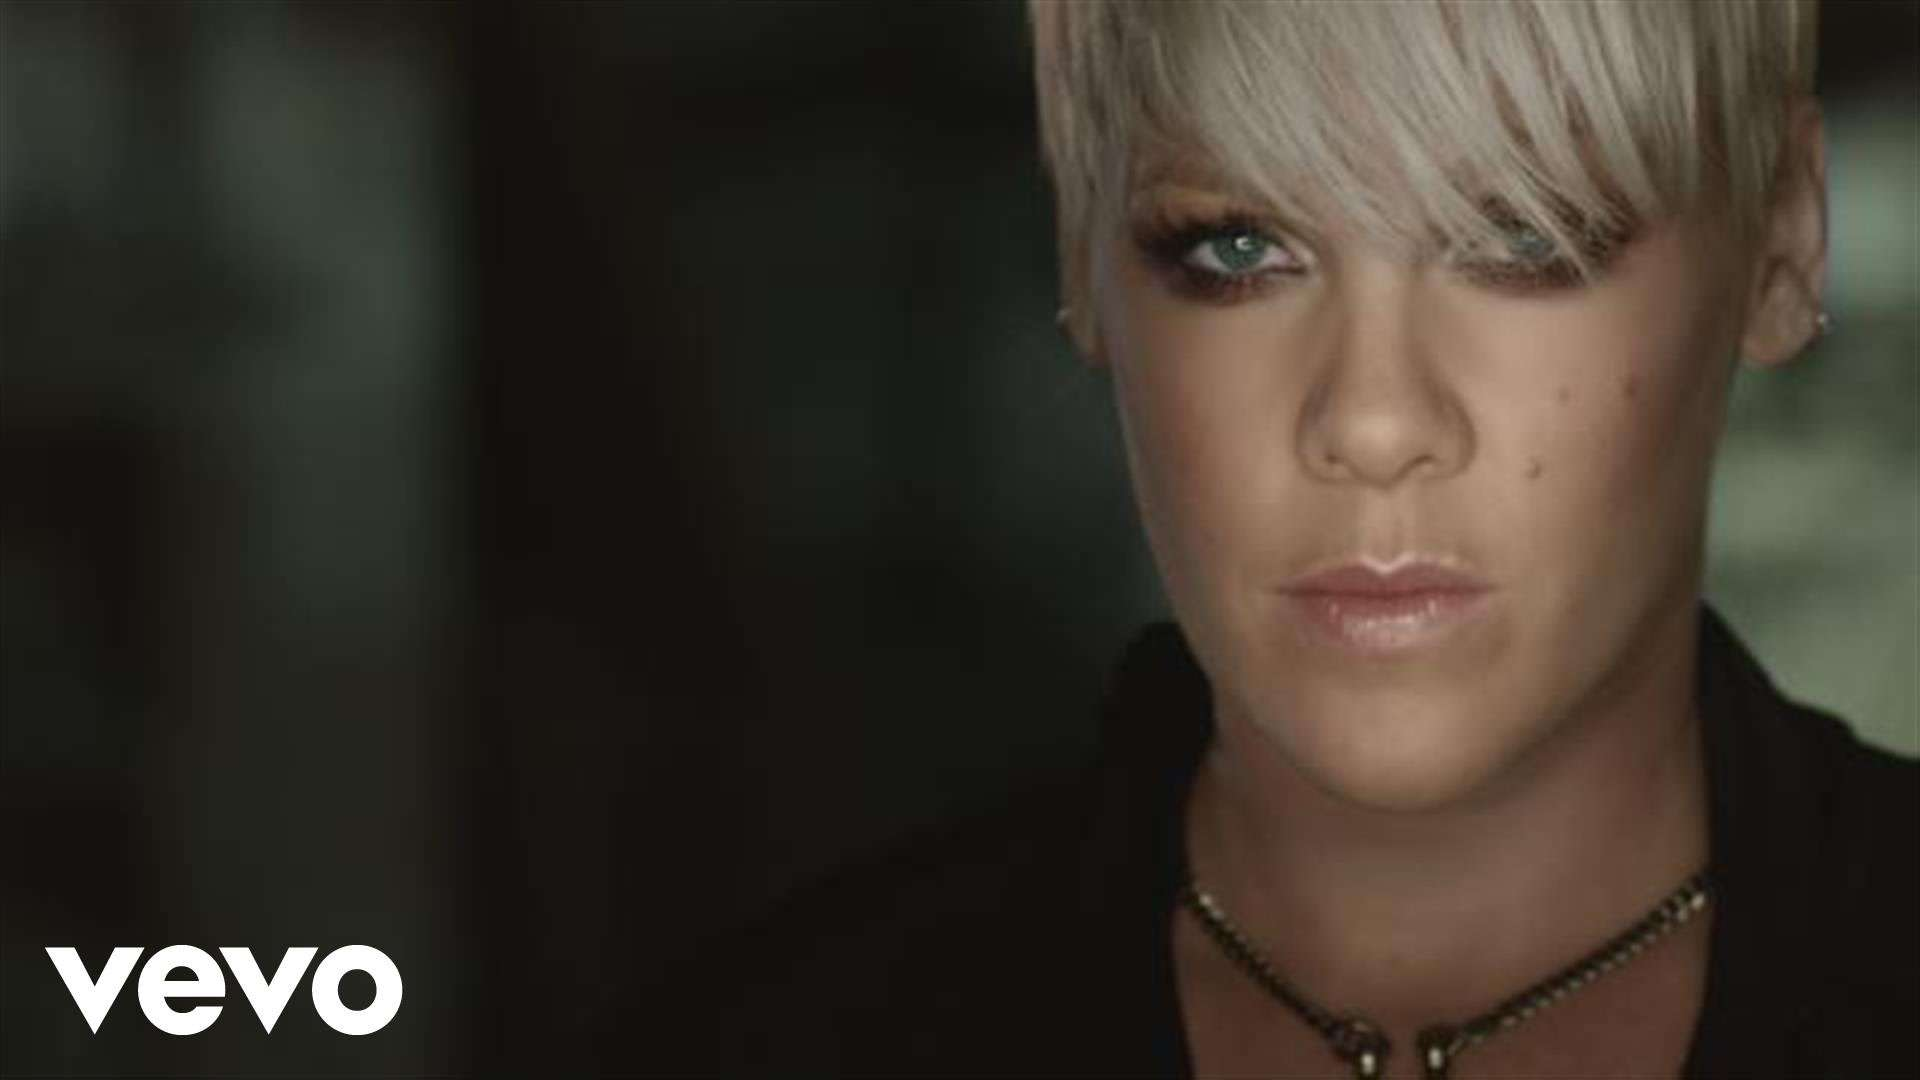 P!nk - F**kin' Perfect (Explicit Version) - YouTube